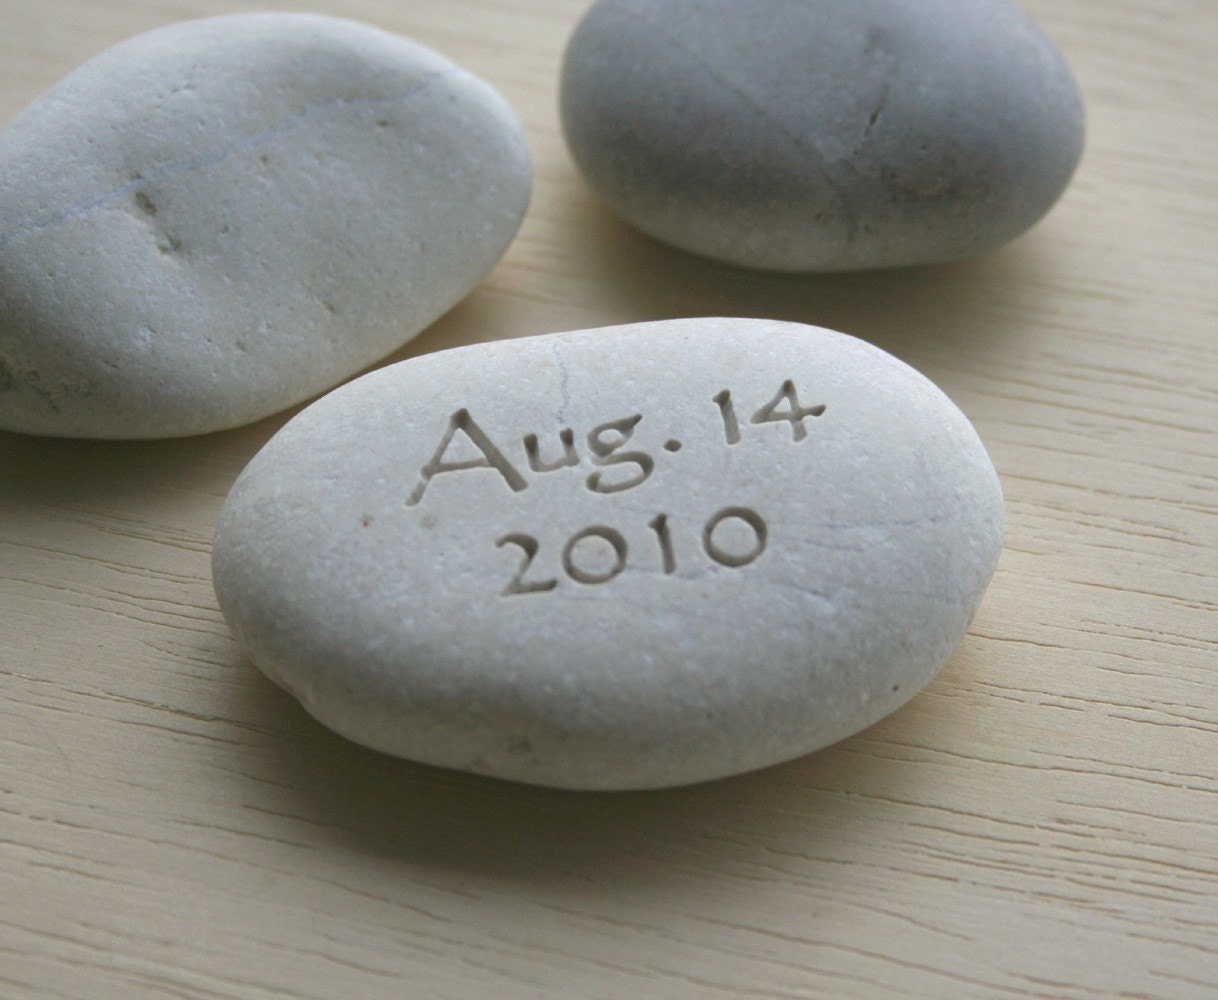 Petite love stone (TM) - you plus me personalized initials pebble with date - Double sided engraved pebble by sjEngraving